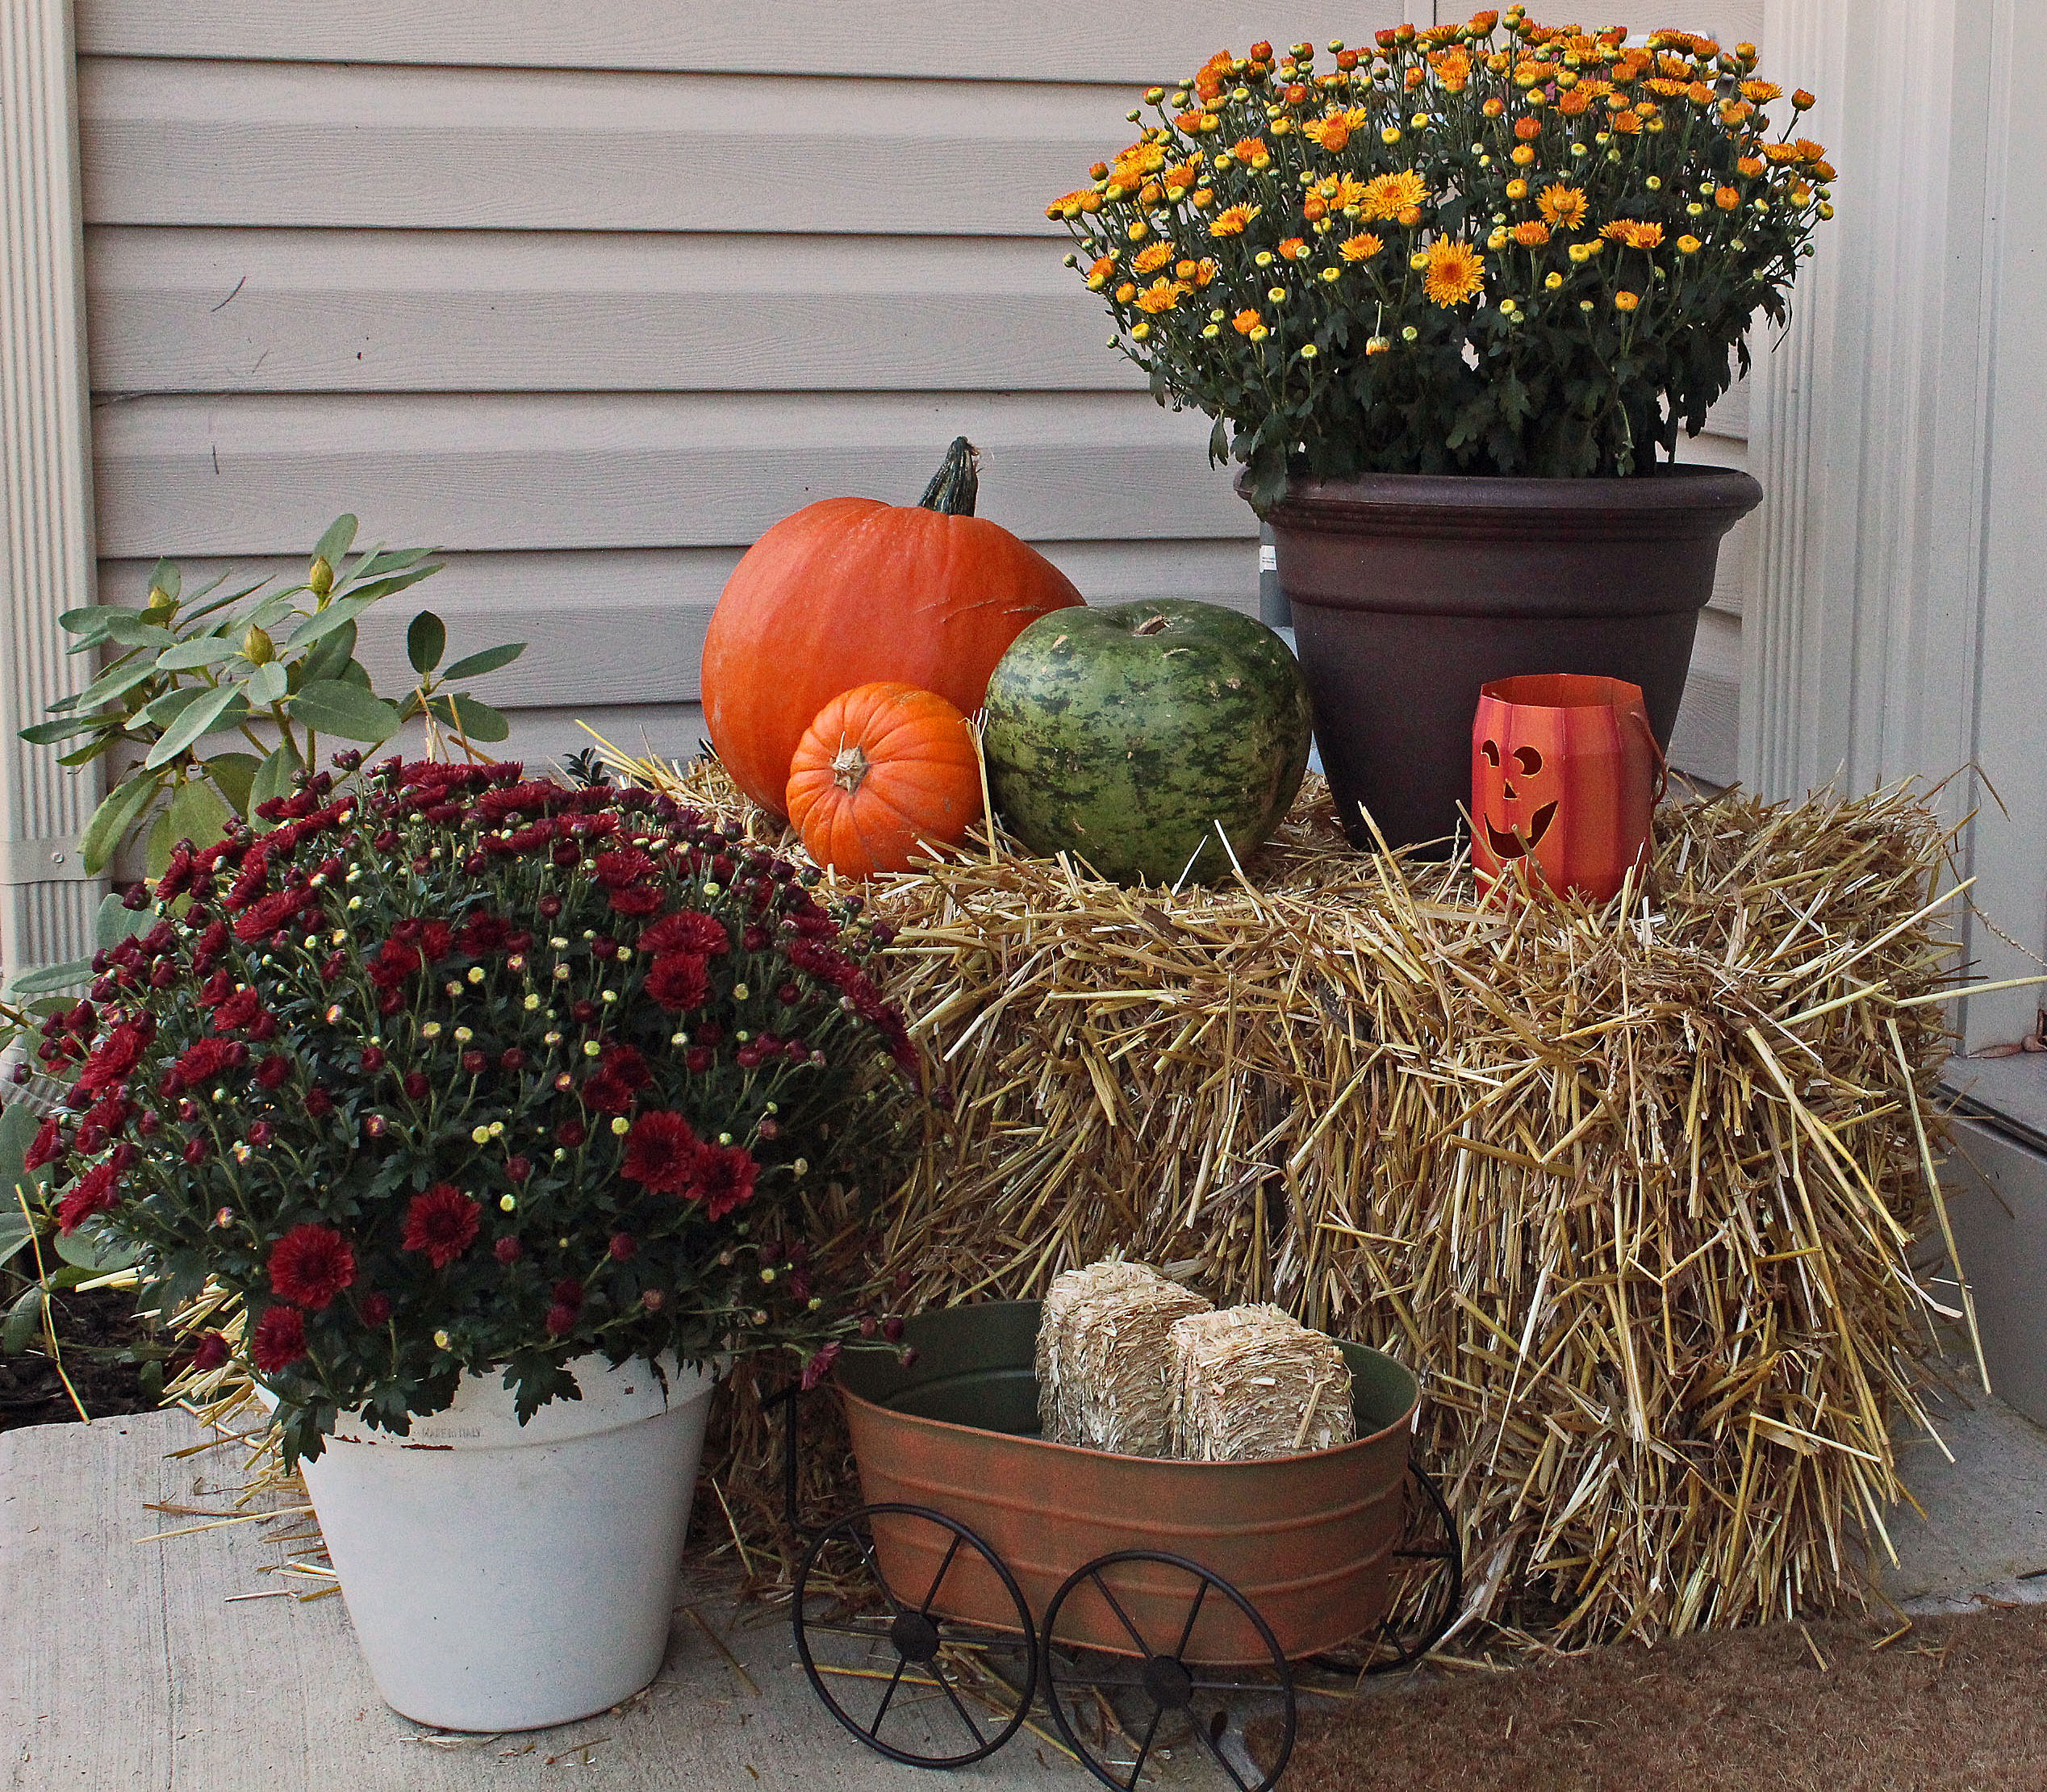 Autumn Yard Decorations: All Sorts Of Festive In The Out-of-Doors